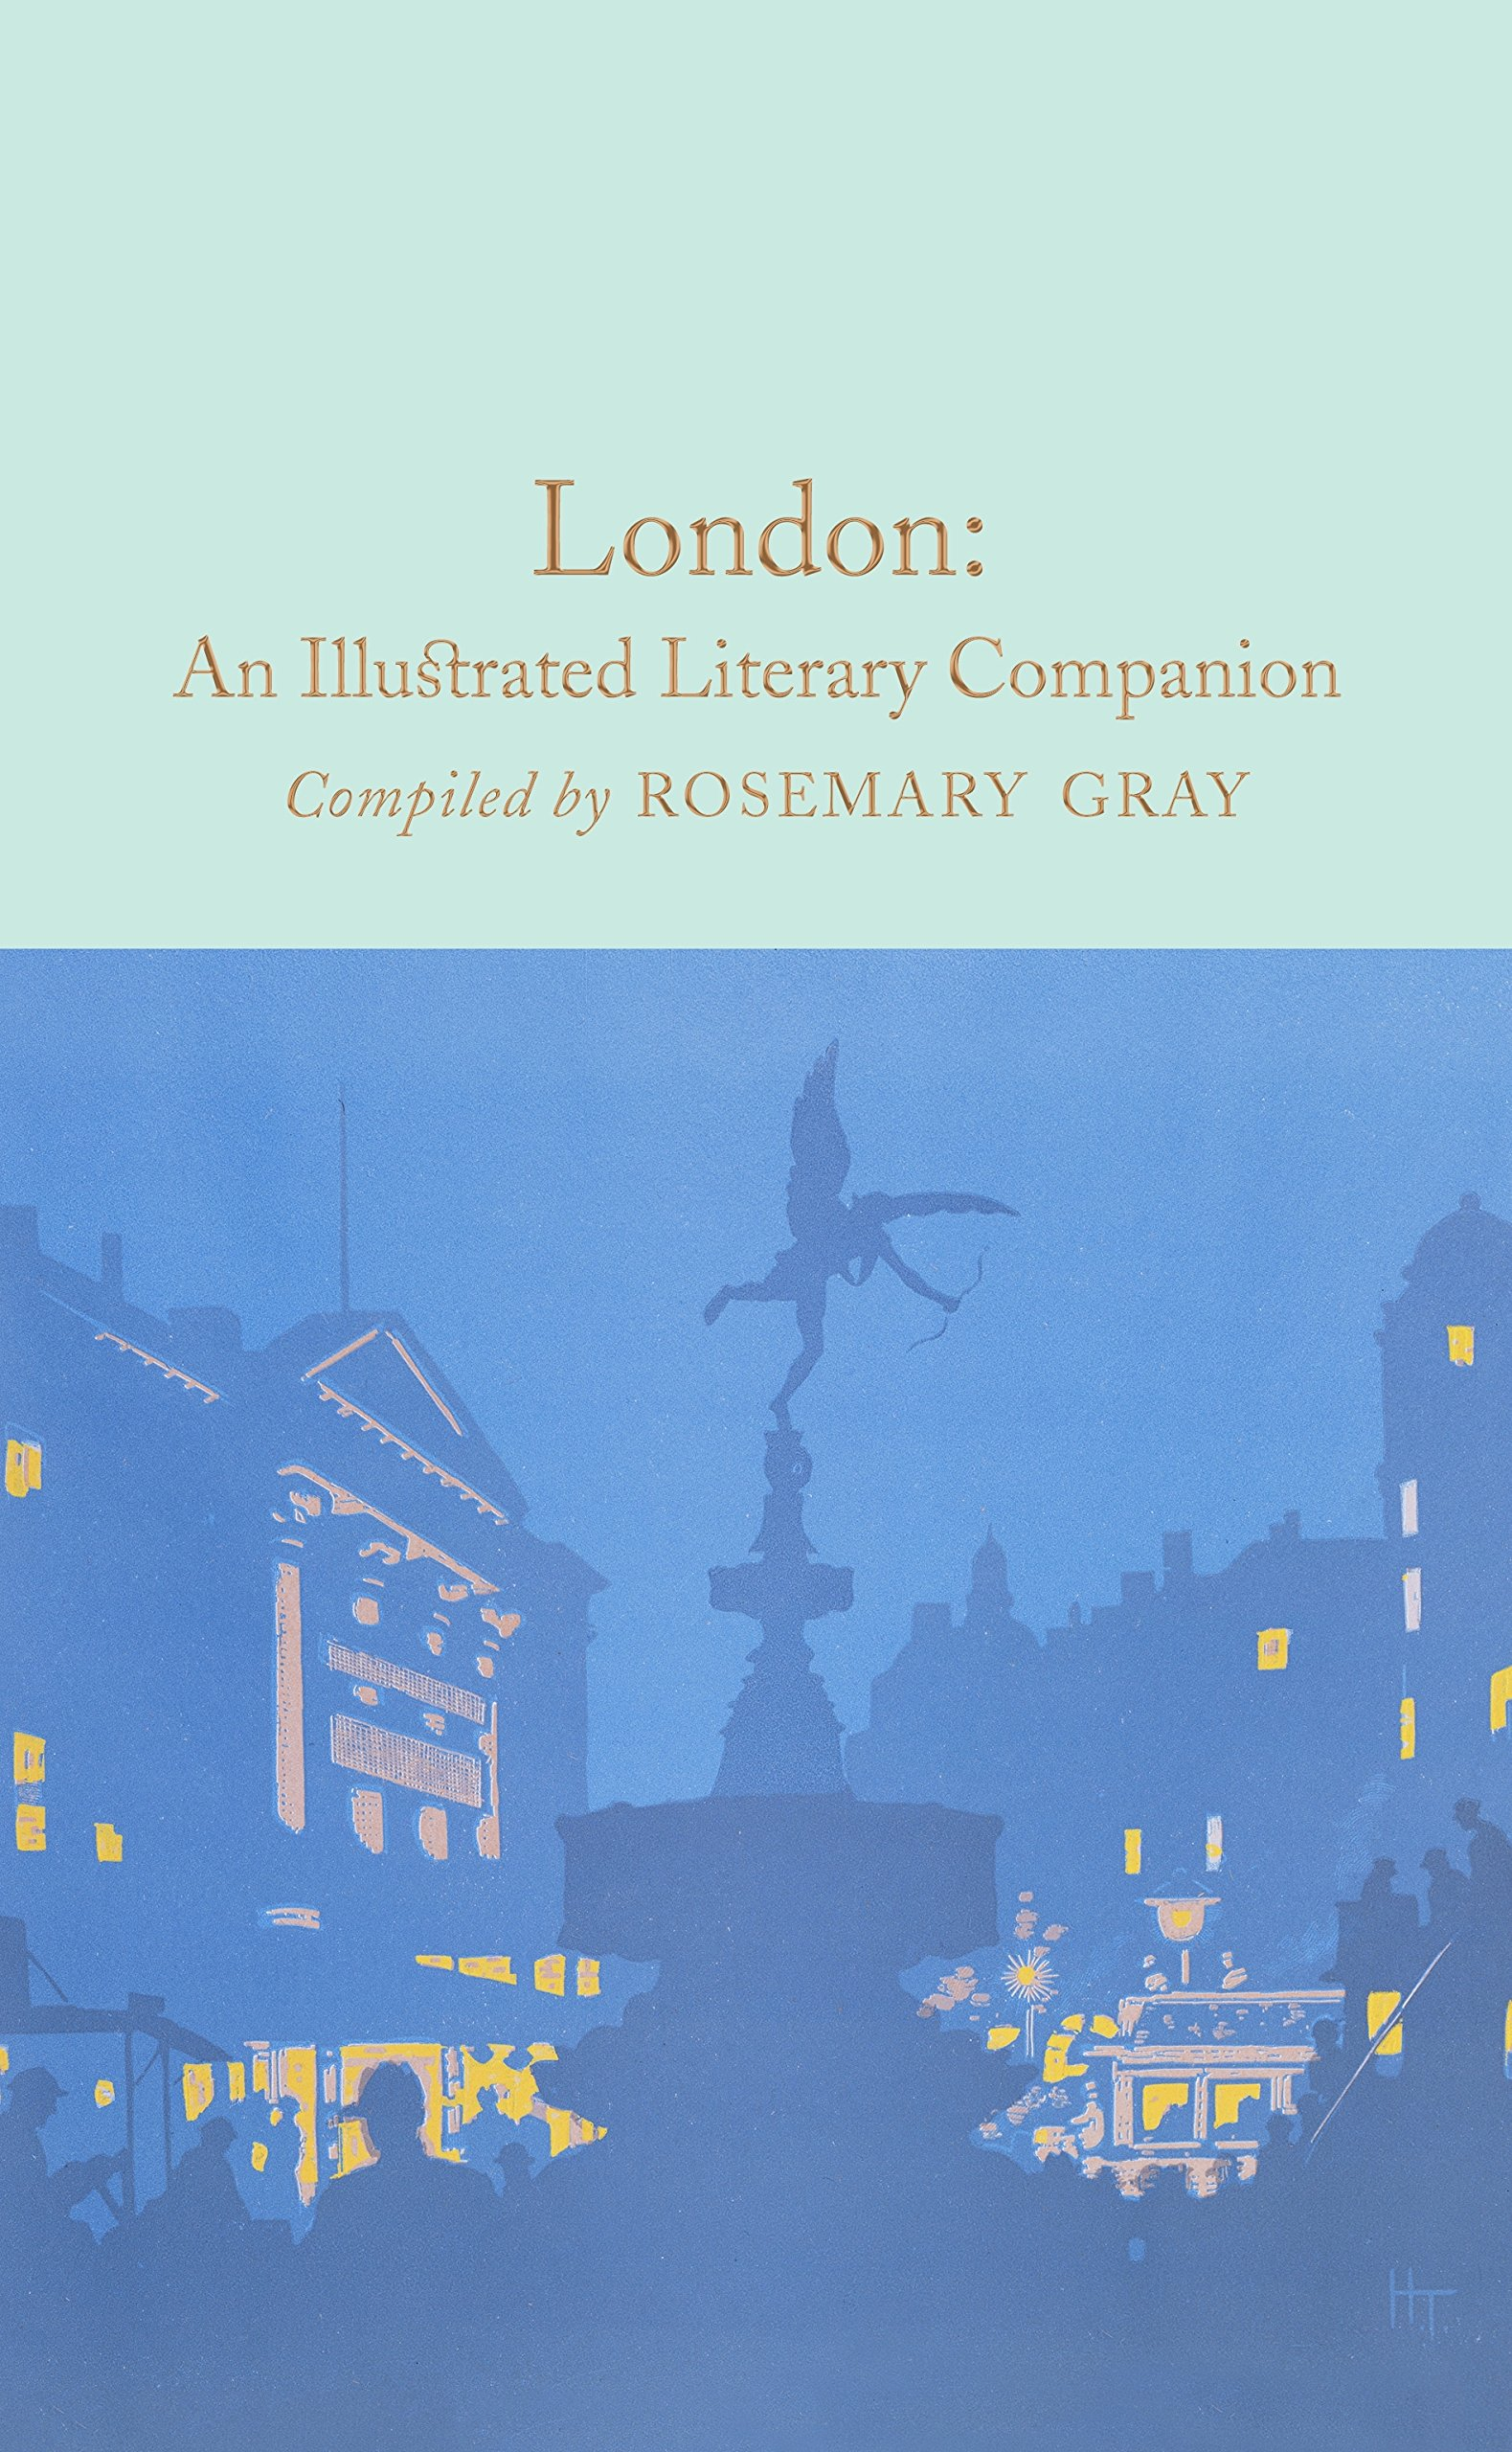 Download London: An Illustrated Literary Companion (Macmillan Collector's Library) PDF